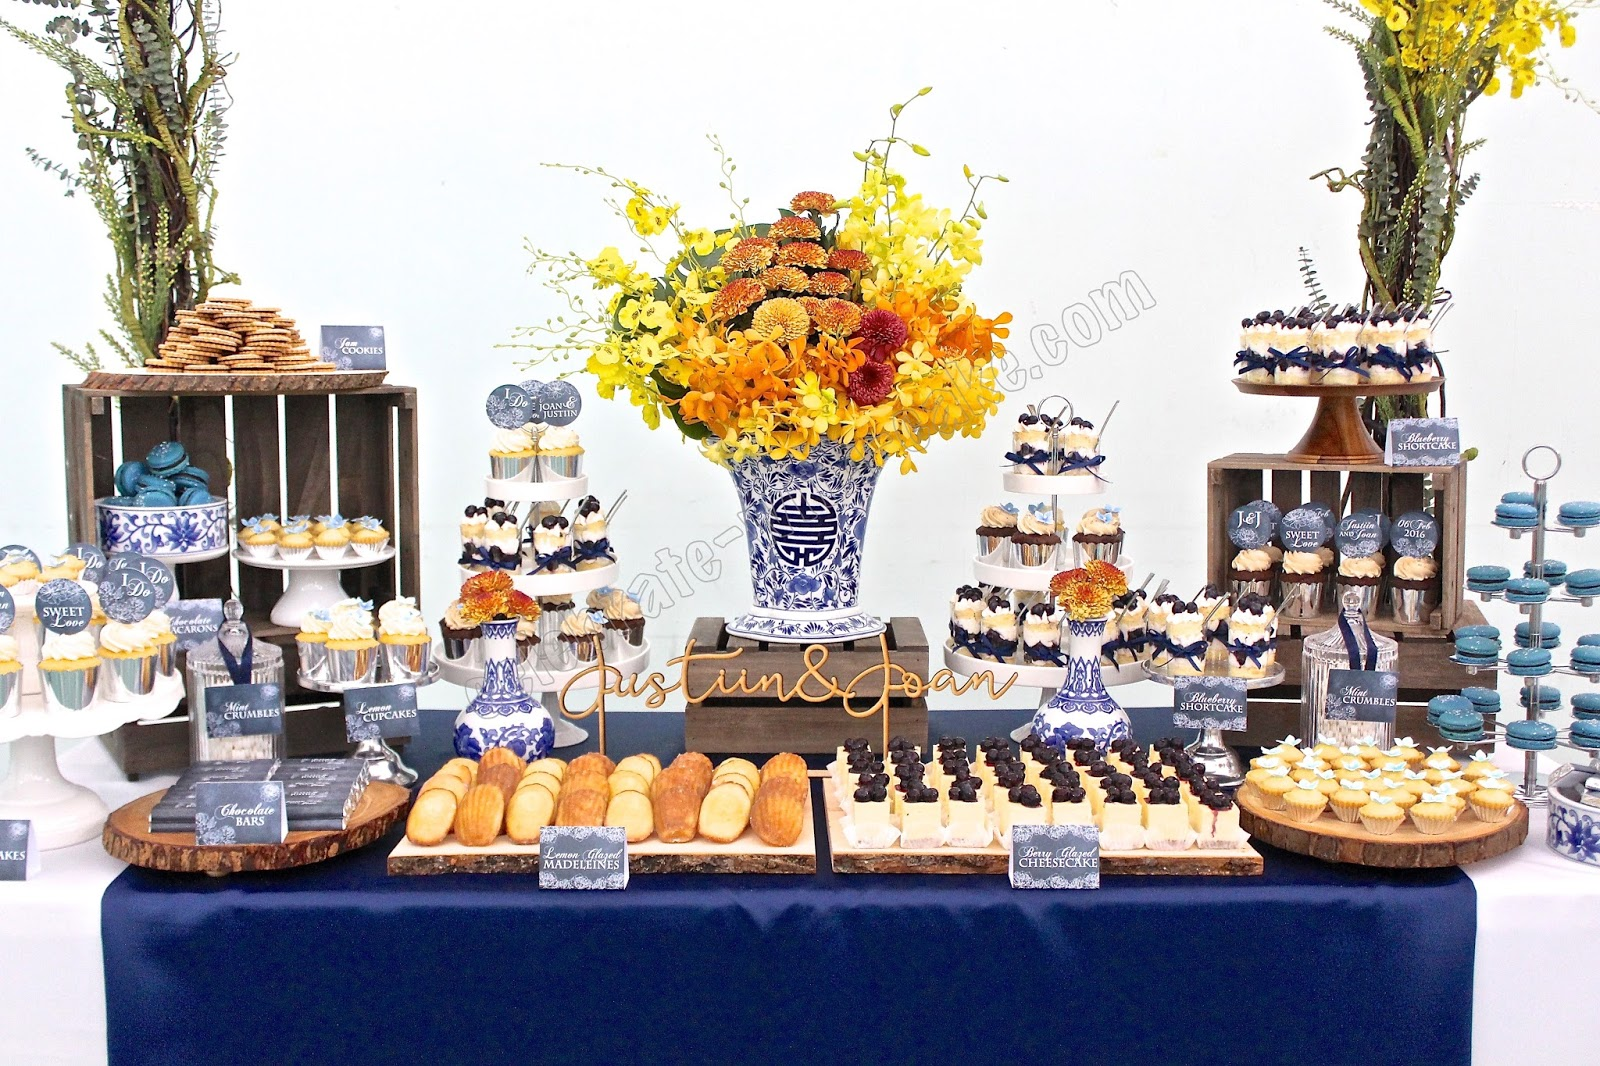 Wedding Sweet Tables Dessert Station Themes Tips Fruits: Chinese Porcelain Themed Wedding Dessert Table (click Post